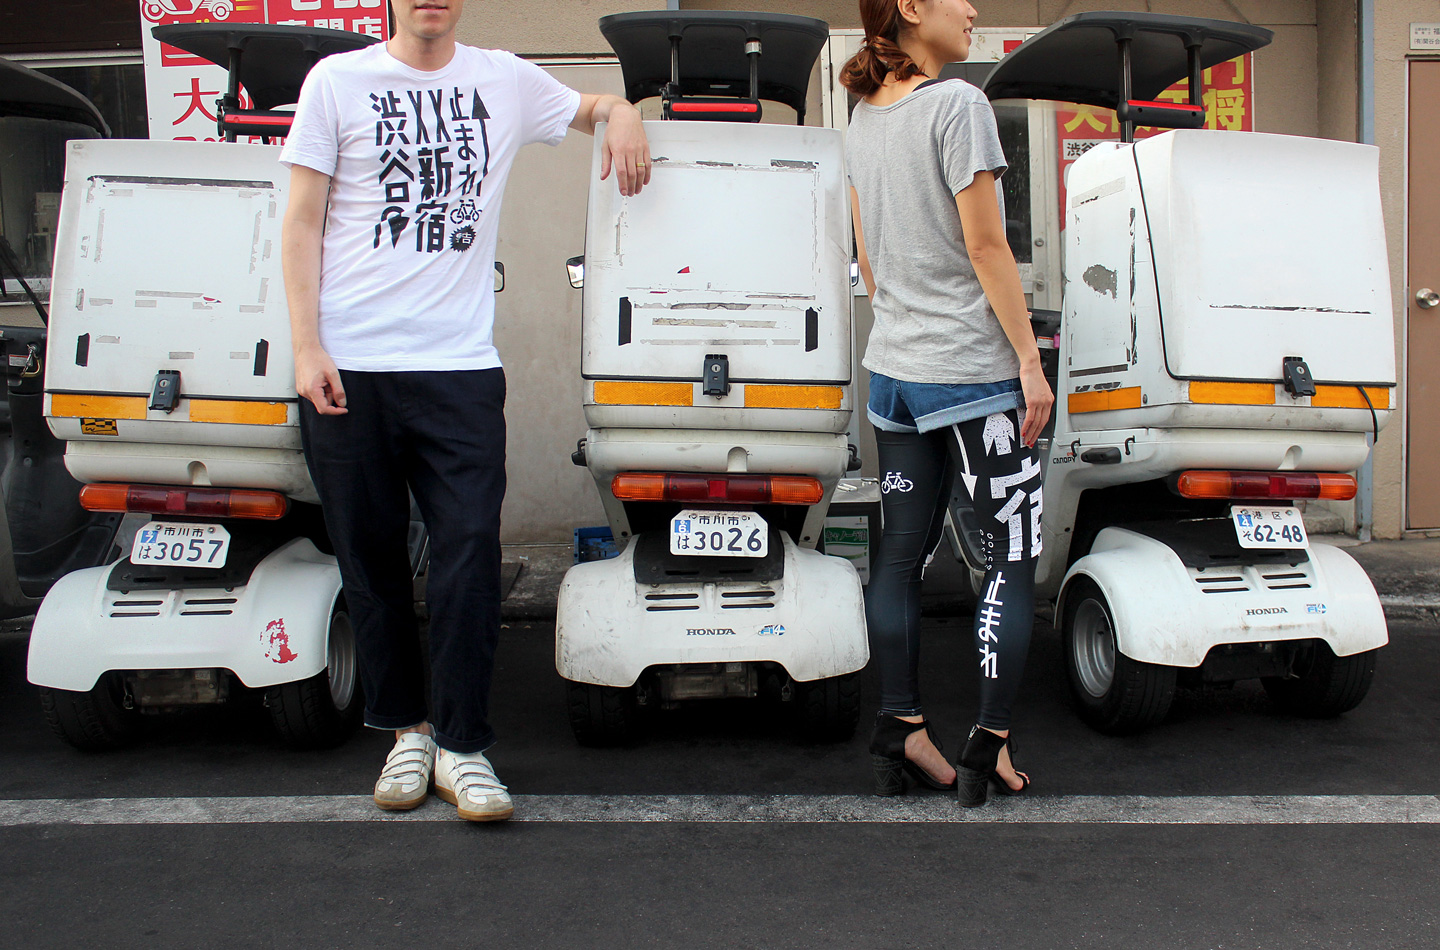 Tokyo Signs™ - Products inspired by the streets of Tokyo - From Shinjuku to Shibuya Leggings & Tokyo Roadmarks T-shirt